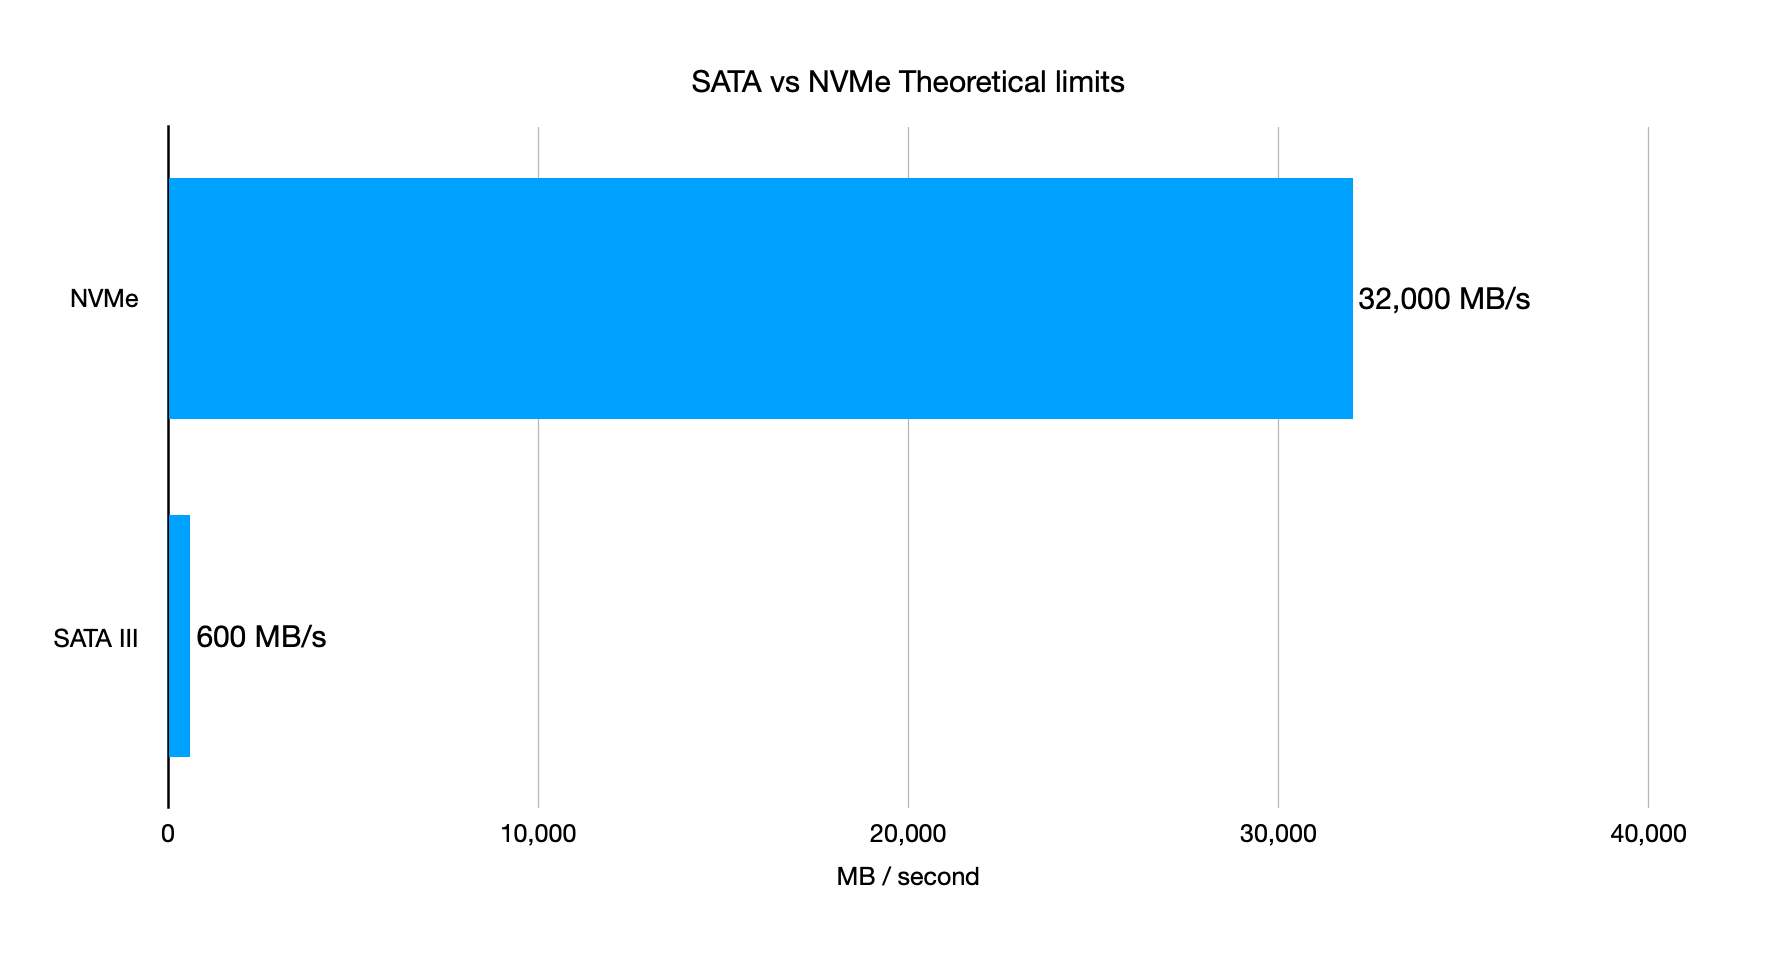 SATA SSD vs NVMe theoretical performance limit